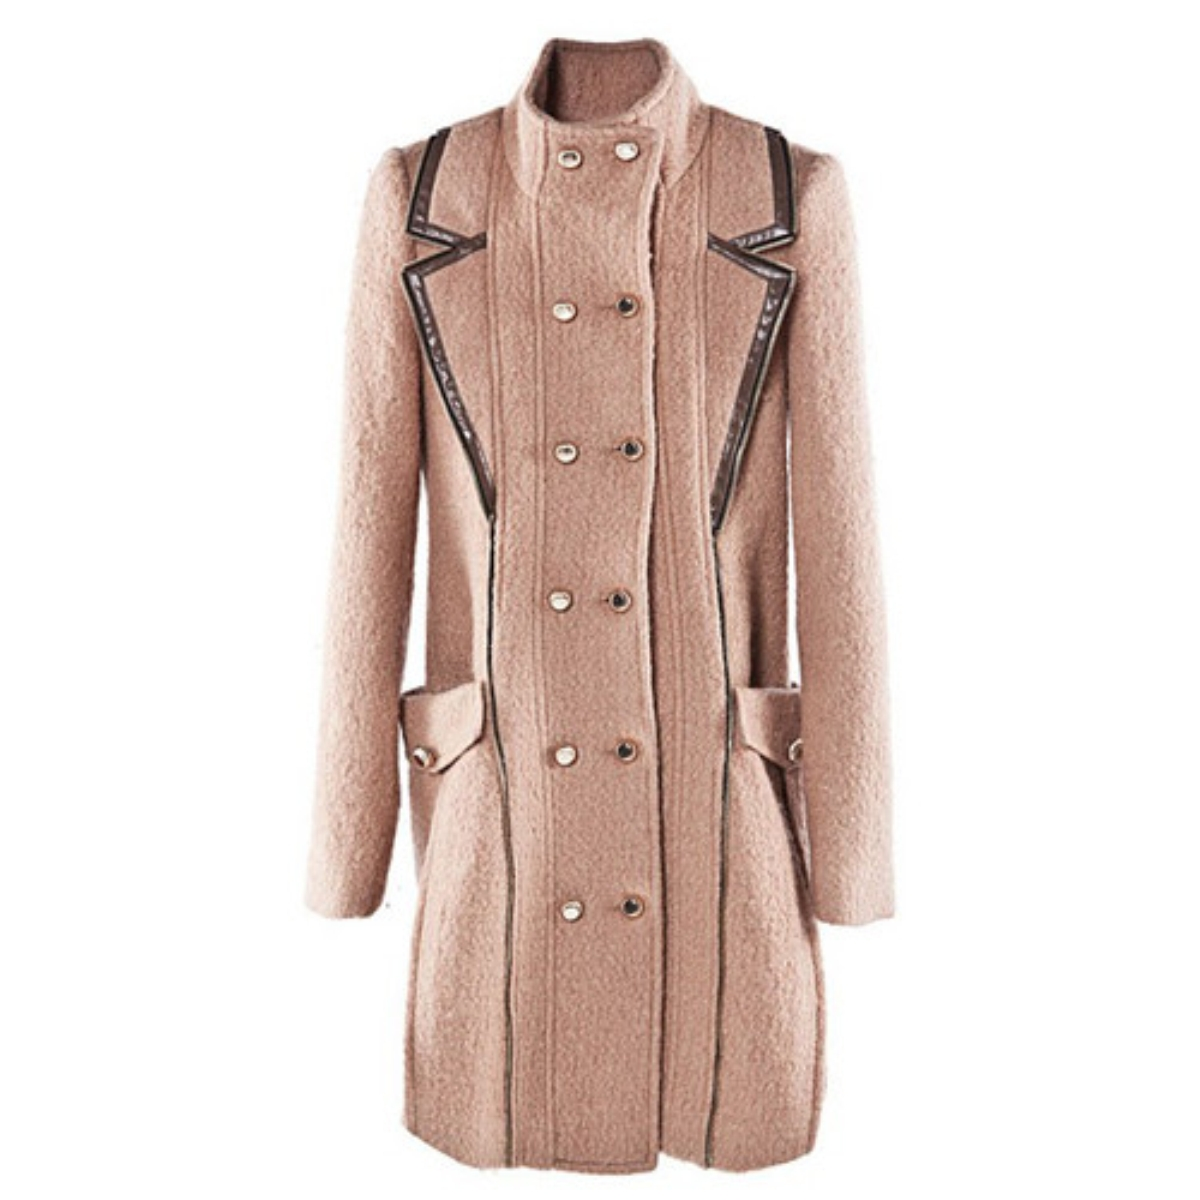 Stand Collar Double-Breasted Woolen Coat,Cheap in Wendybox.com